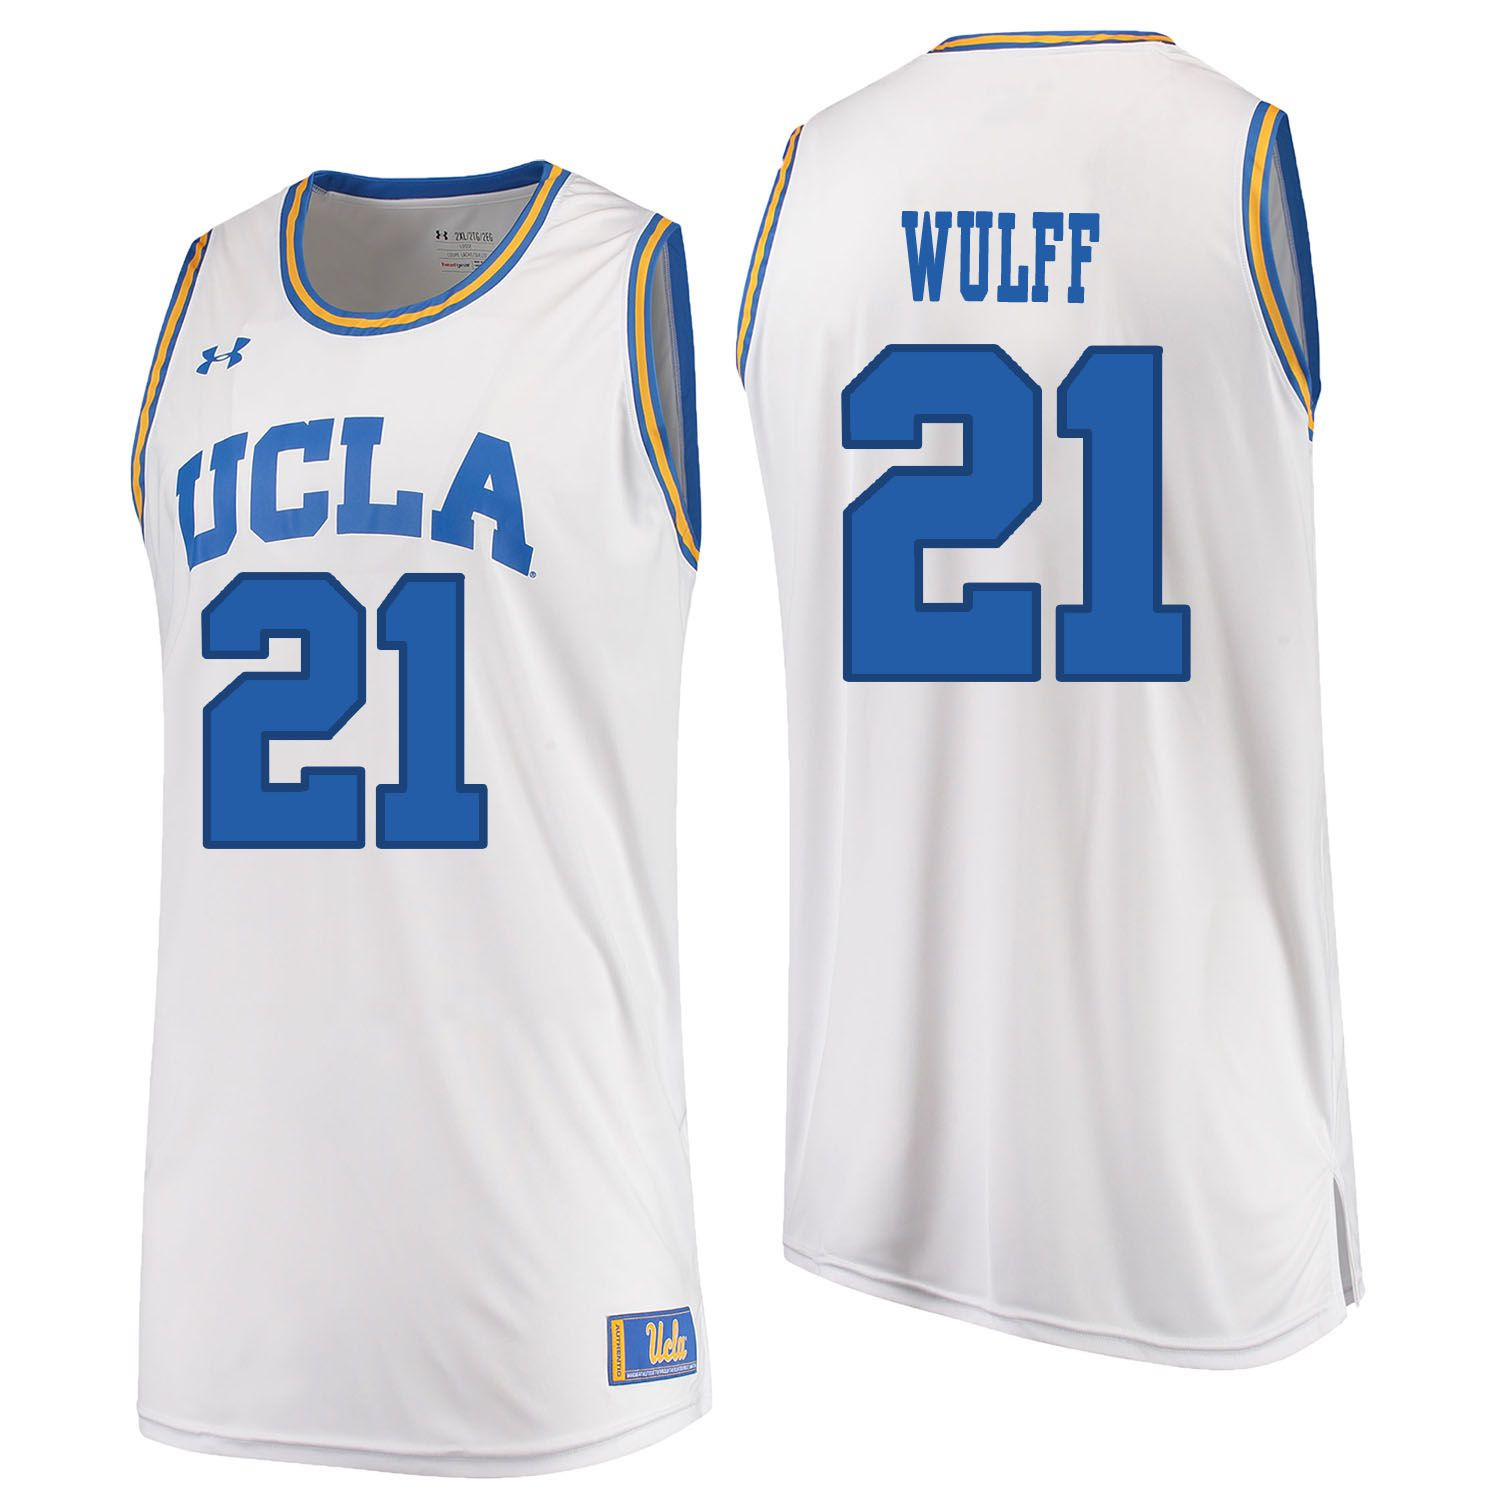 Men UCLA UA 21 Wulff White Customized NCAA Jerseys